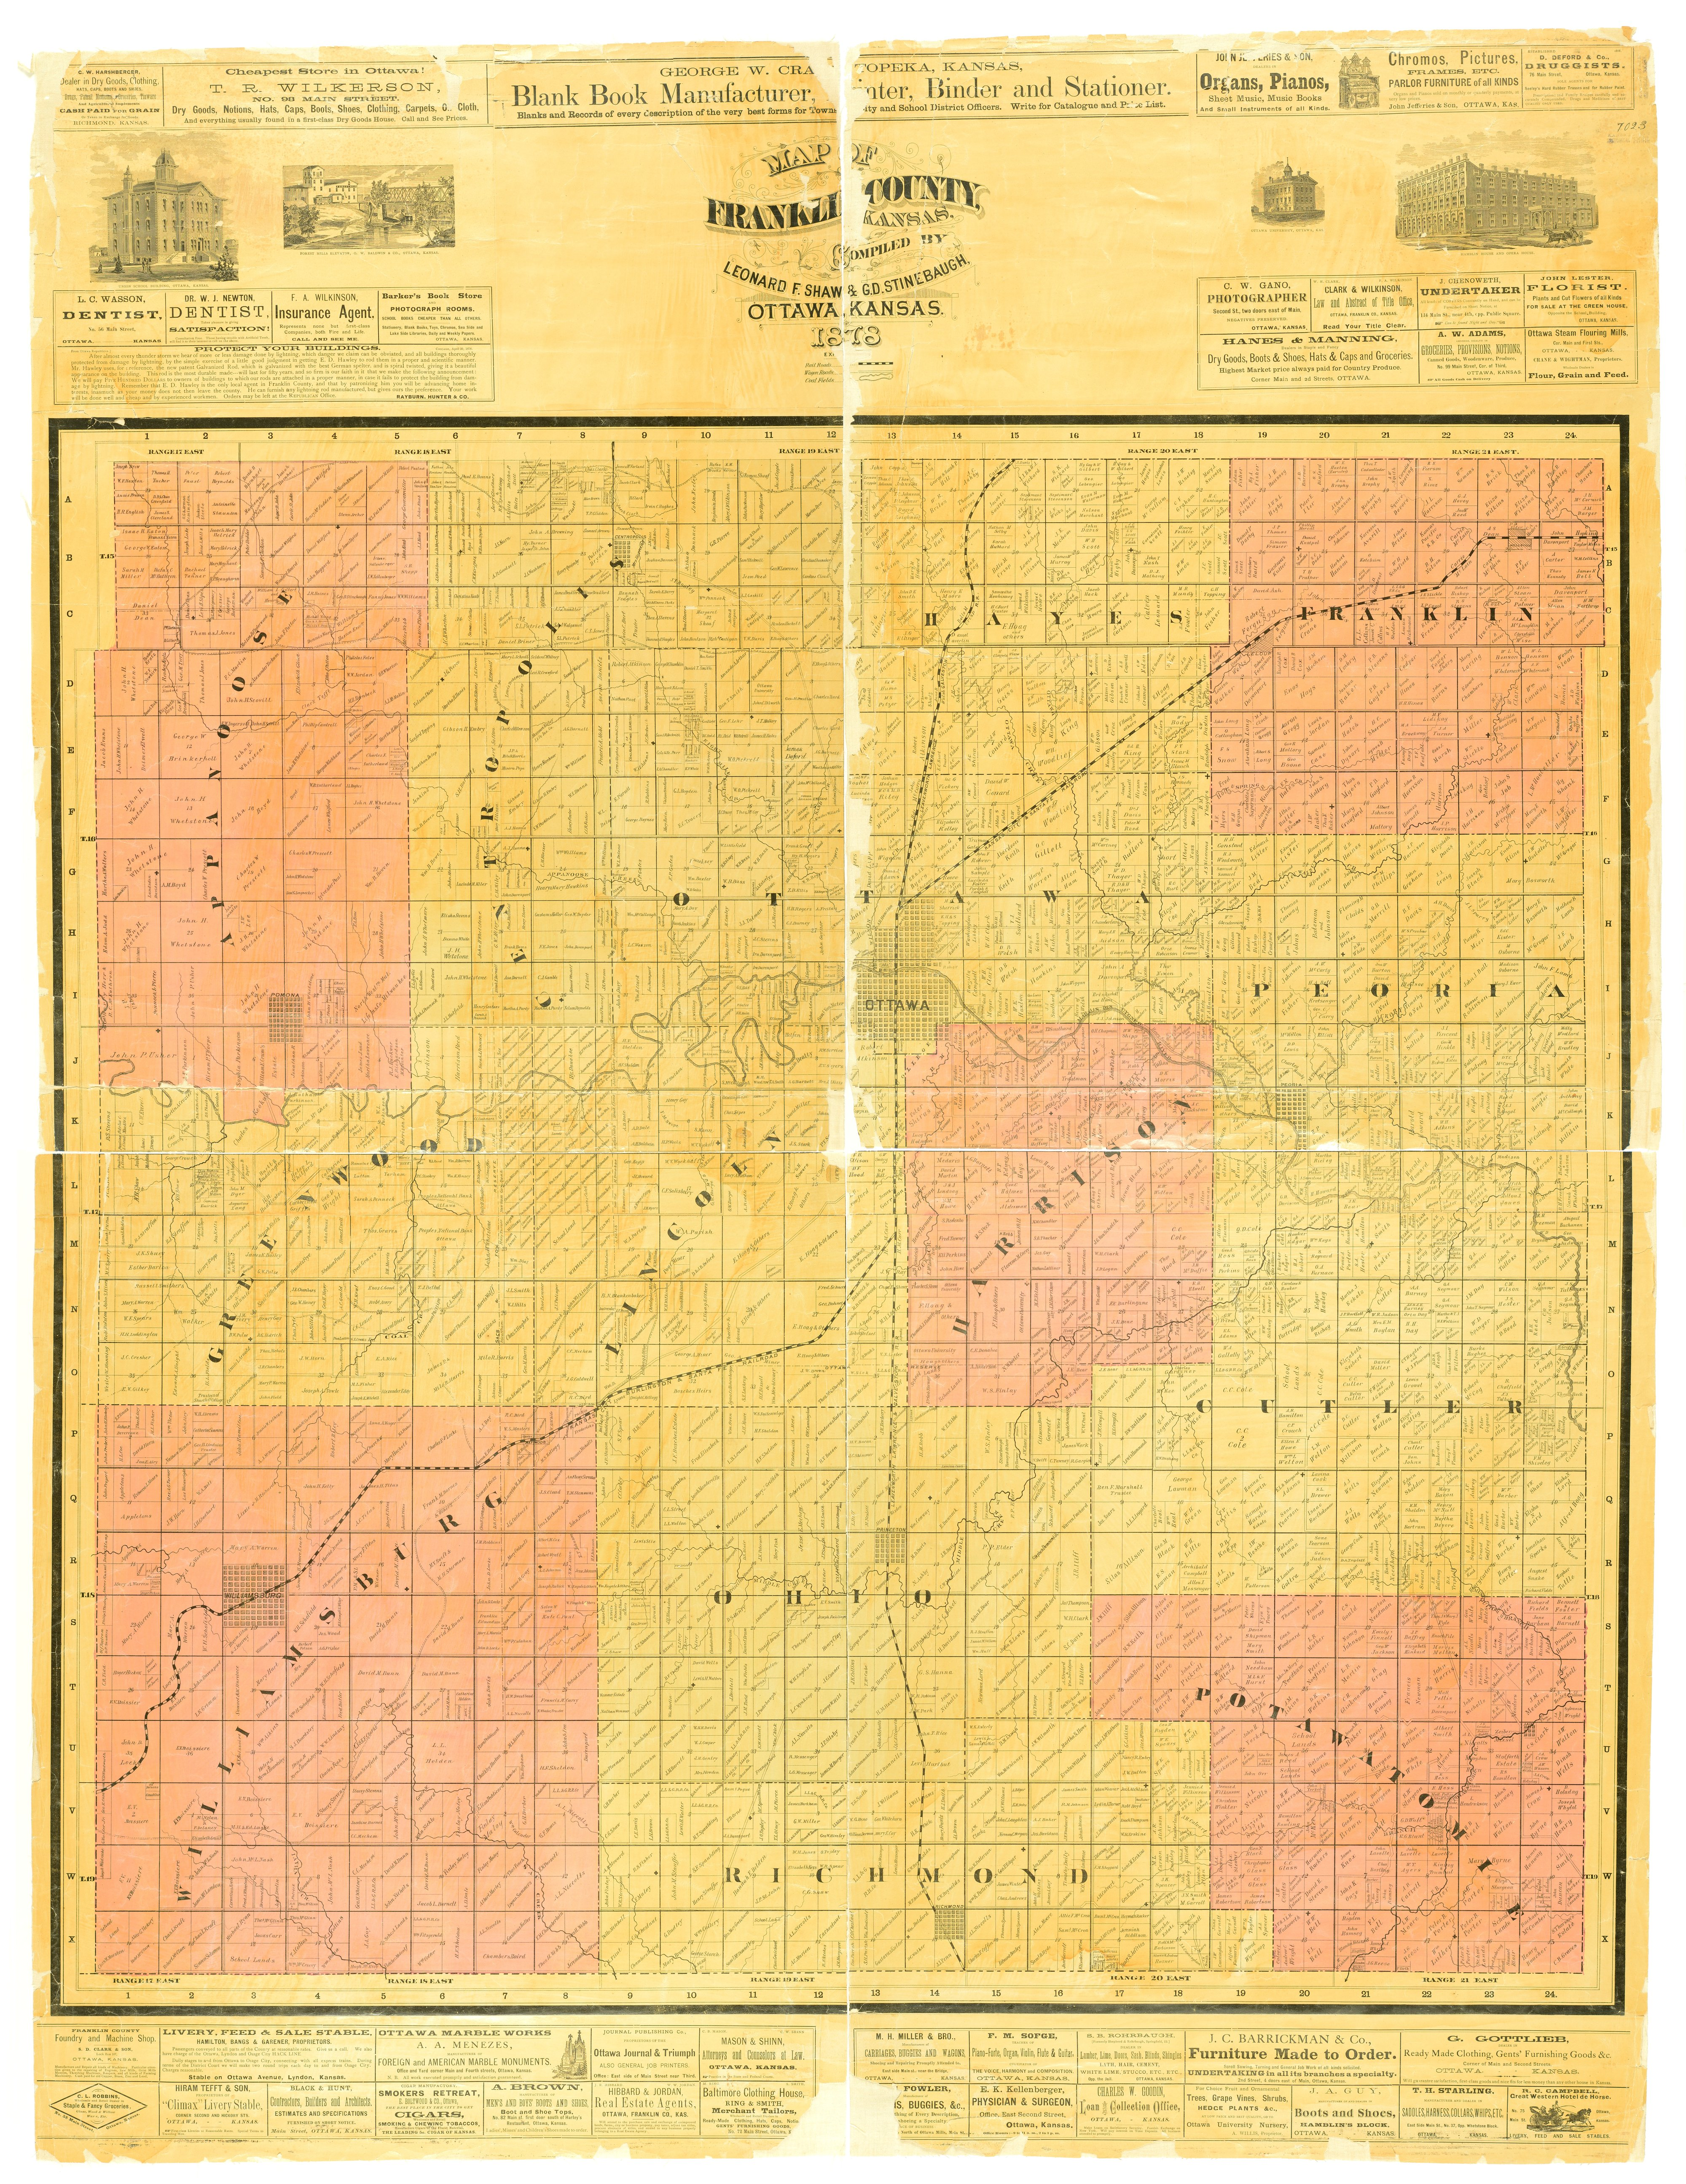 Map of Franklin County, Kansas / compiled by Leonard F. Shaw & G. D. Stinebaugh - 1